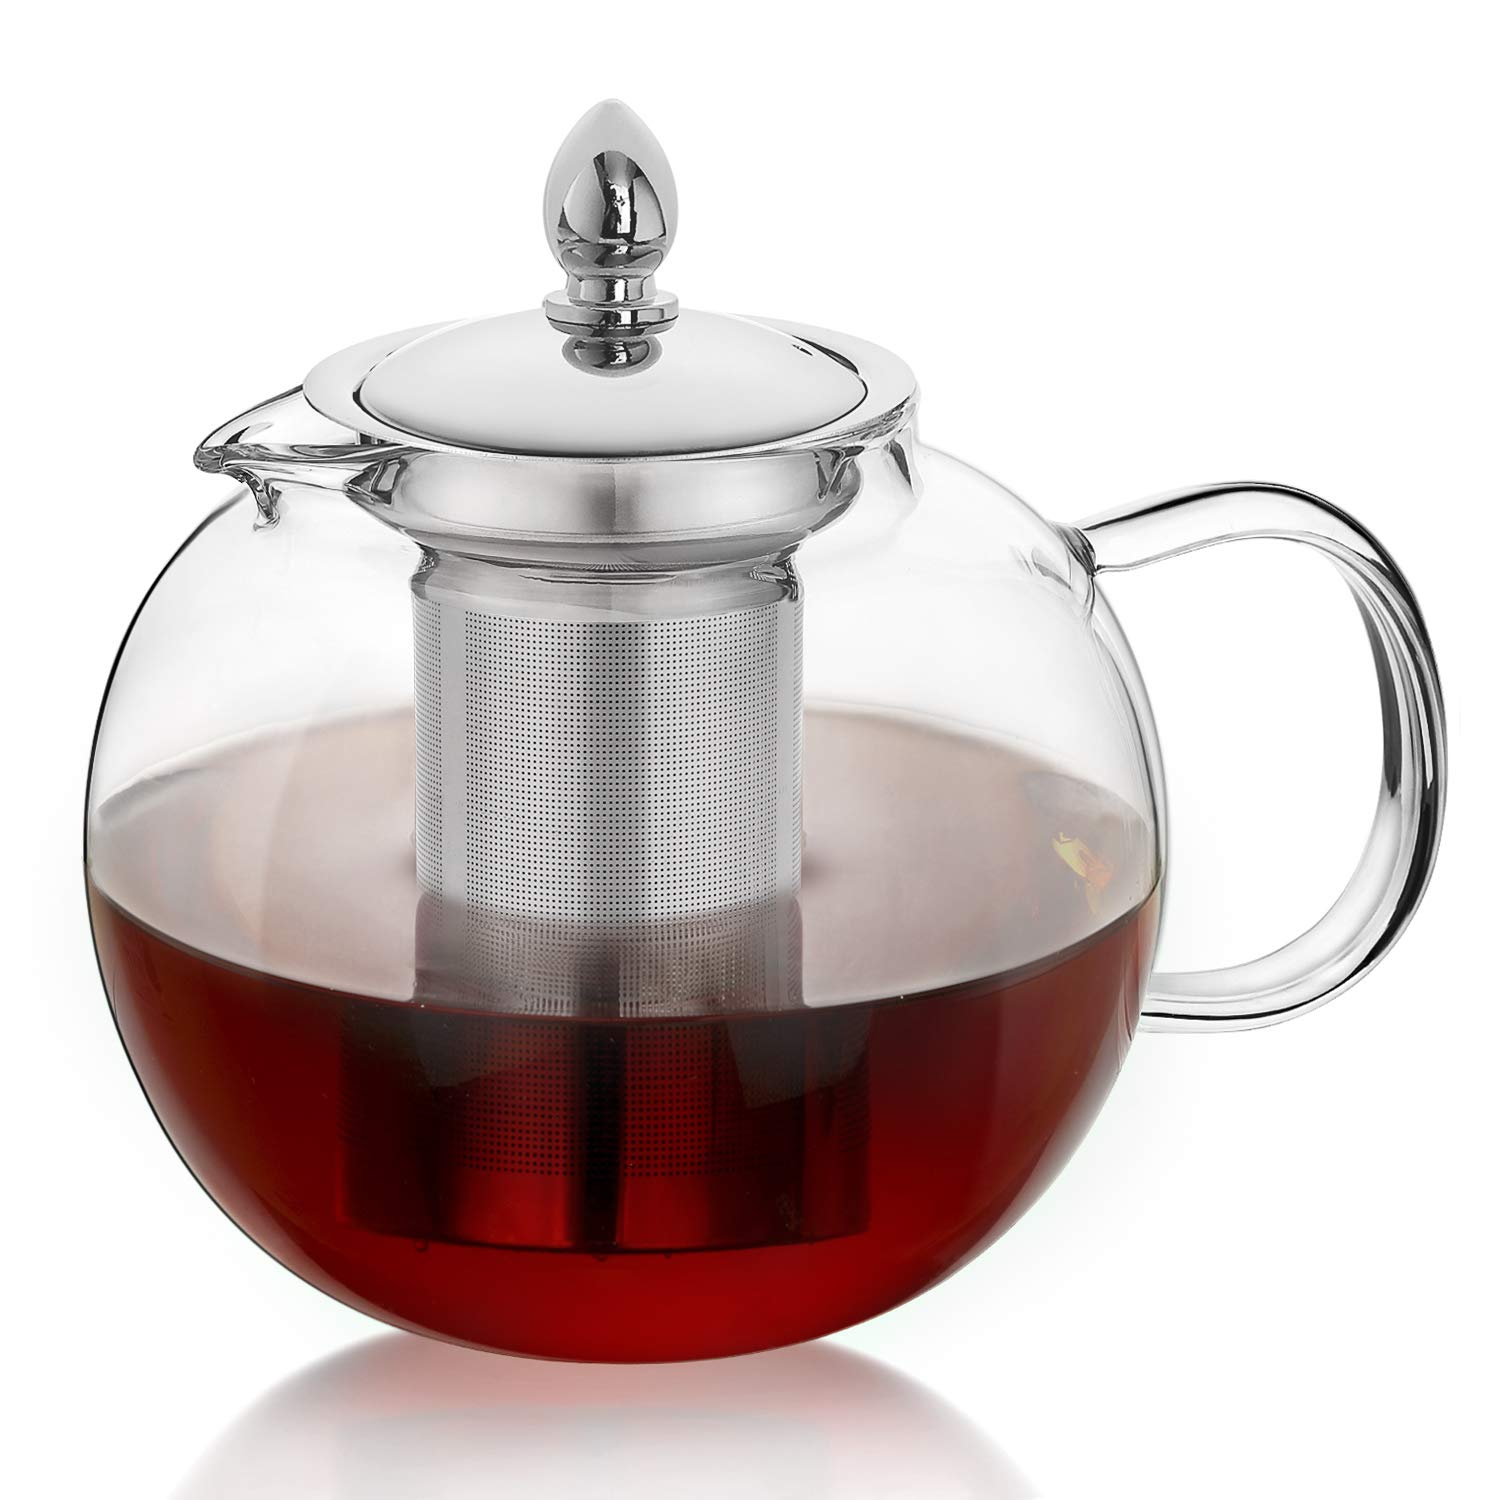 Hiware Glass Teapot with Removable Infuser, Loose Leaf Tea Pot 45oz Heat Resistant Borosilicate Glass Tea Strainer for Loose, Flowering and Blooming Tea, Stovetop Dishwasher Friendly Teapot